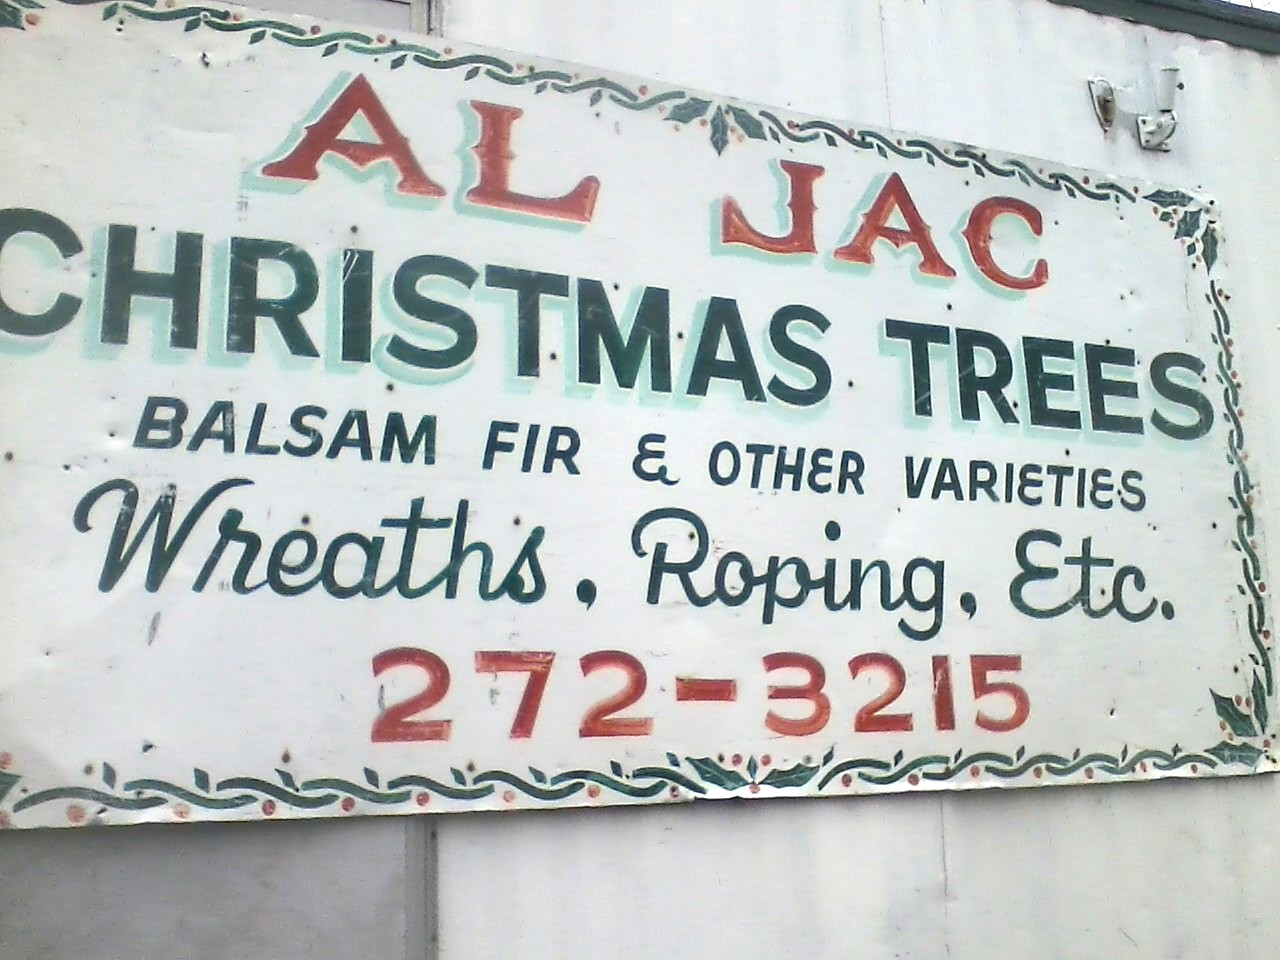 Al Jac Christmas Trees